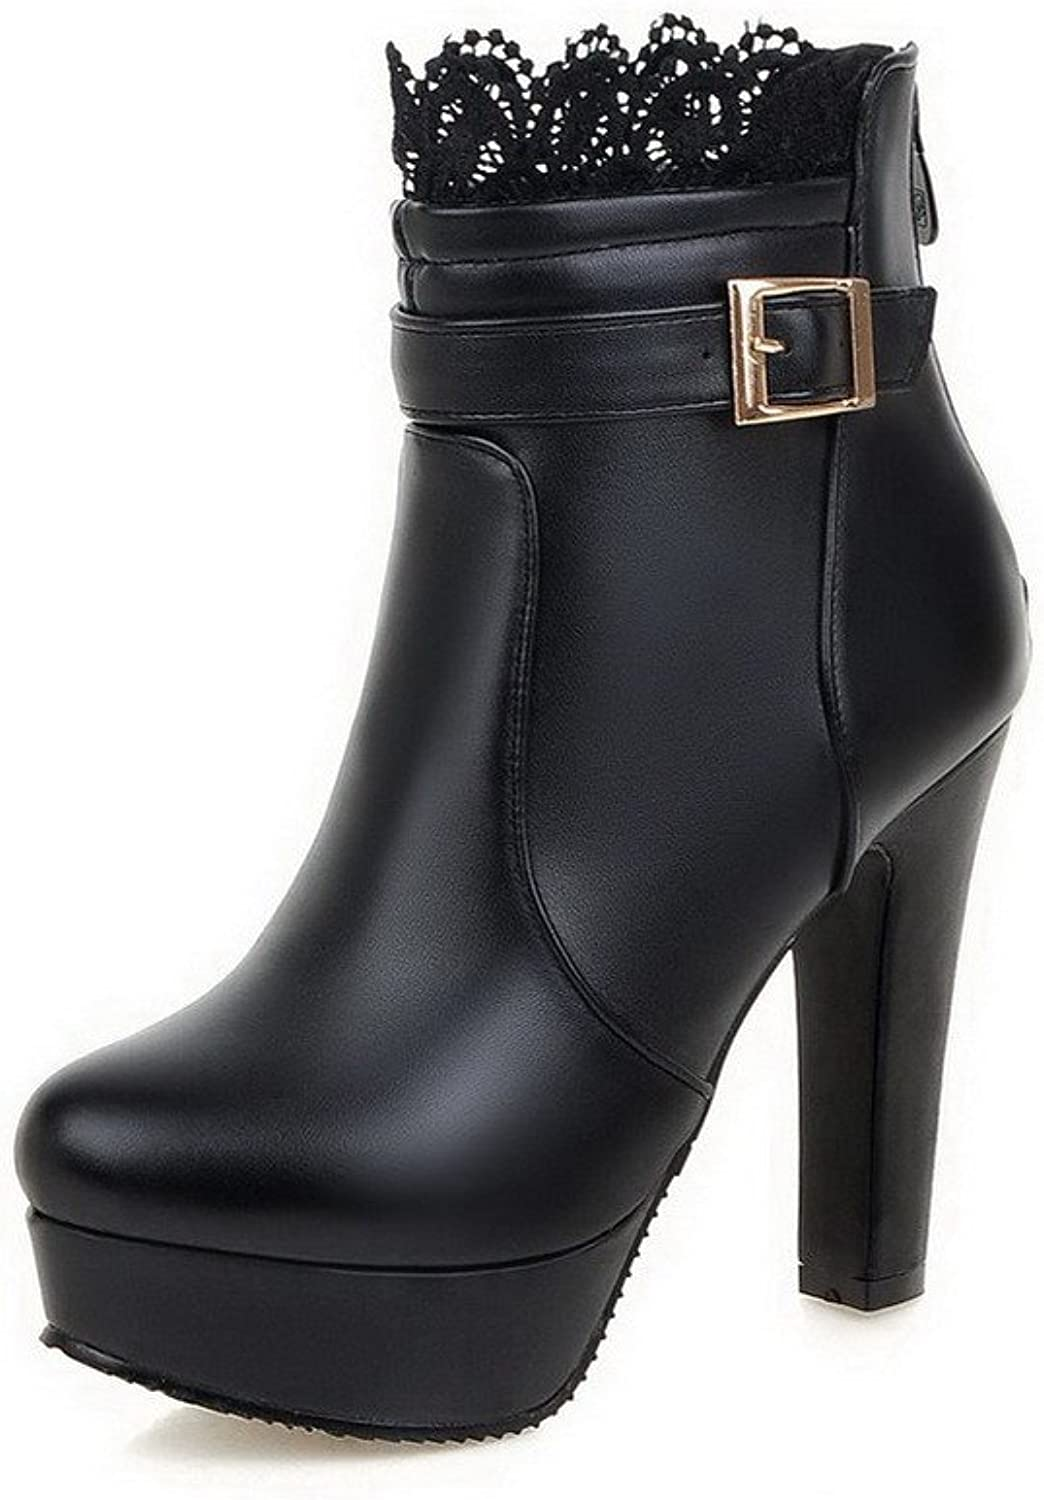 AllhqFashion Women's High Heels Soft Material Low-top Solid Zipper Boots